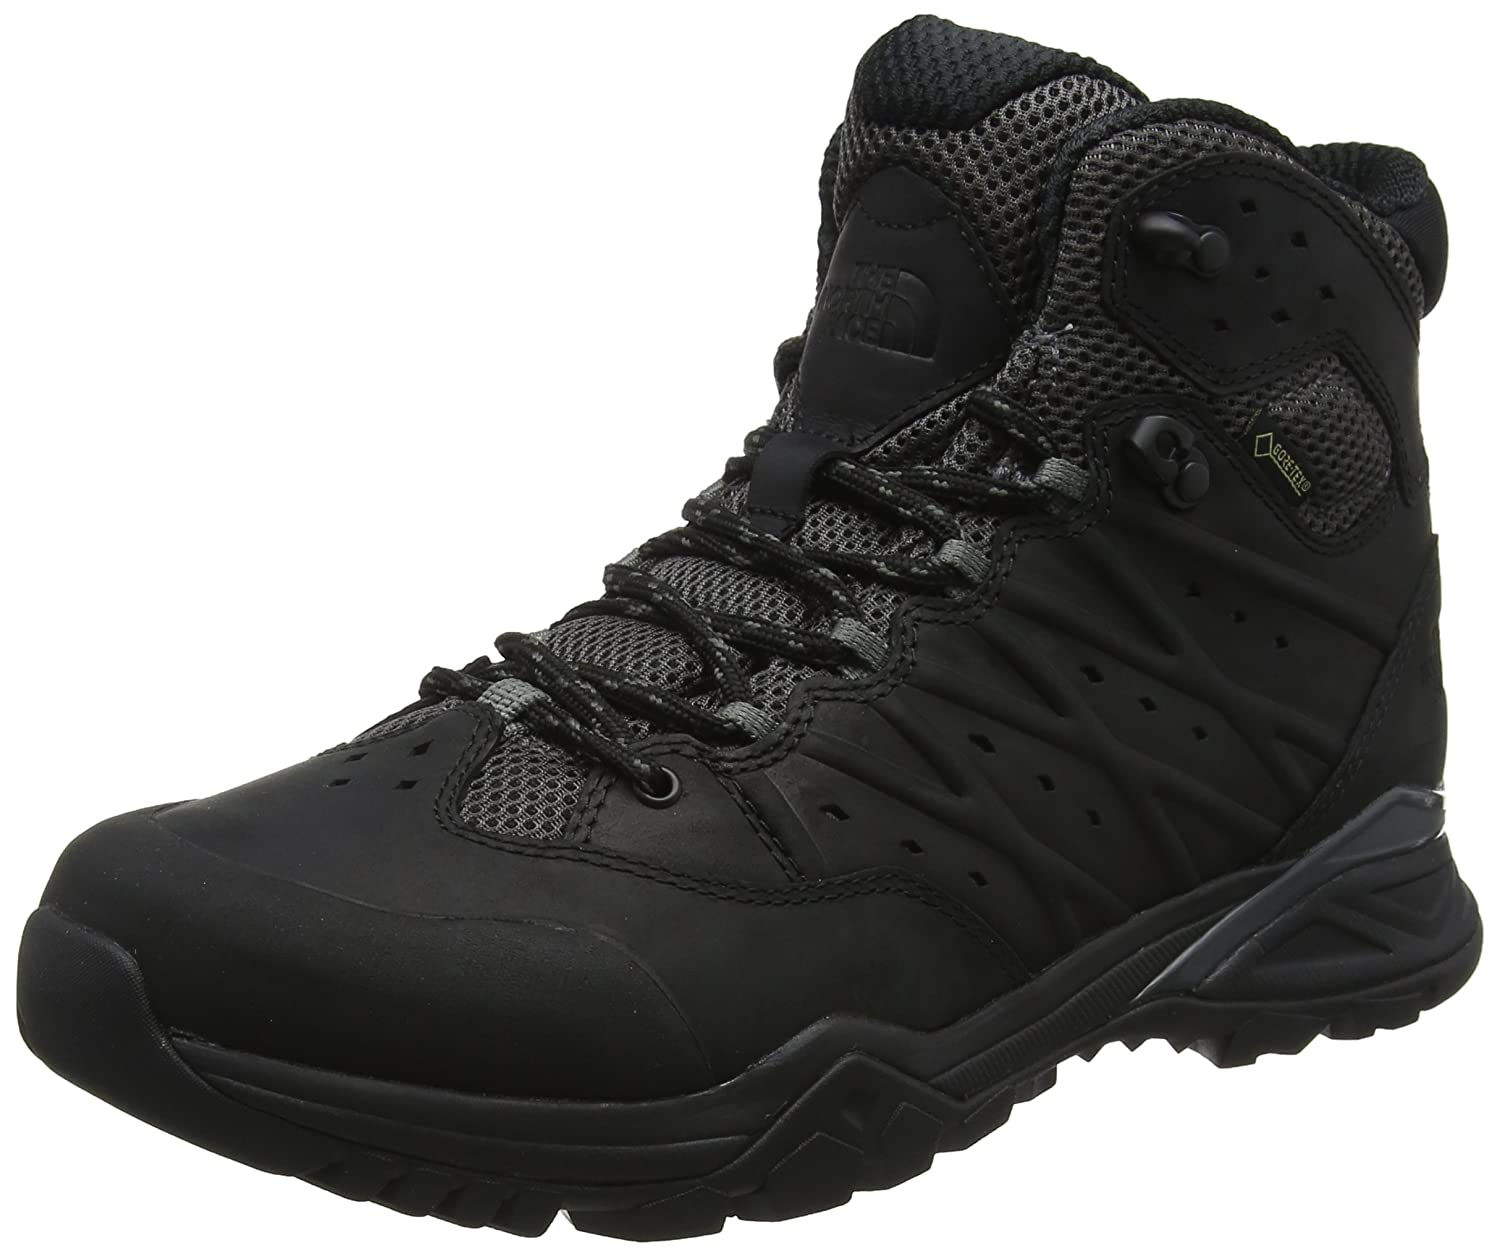 70178313863 The North Face Men's Hedgehog Hike II Mid Gore-Tex